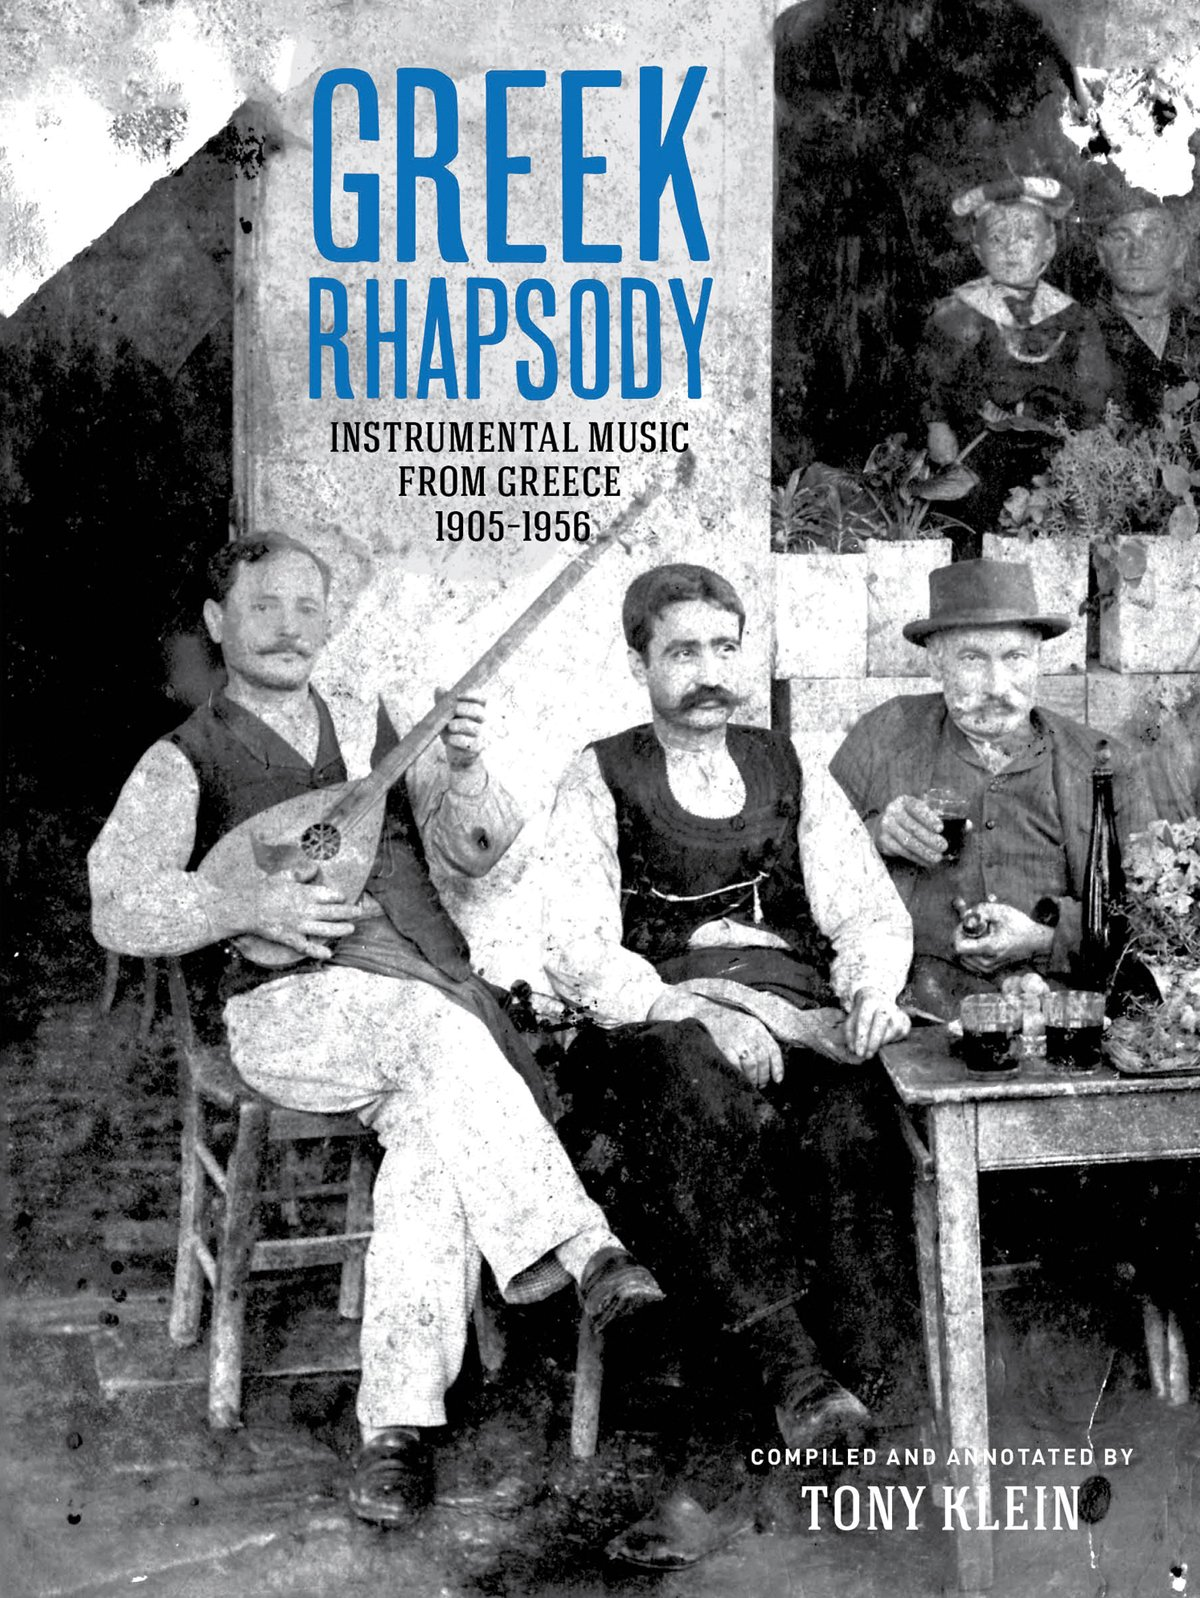 Download Greek Rhapsody: Instrumental Music from Greece 1905-1956 ebook